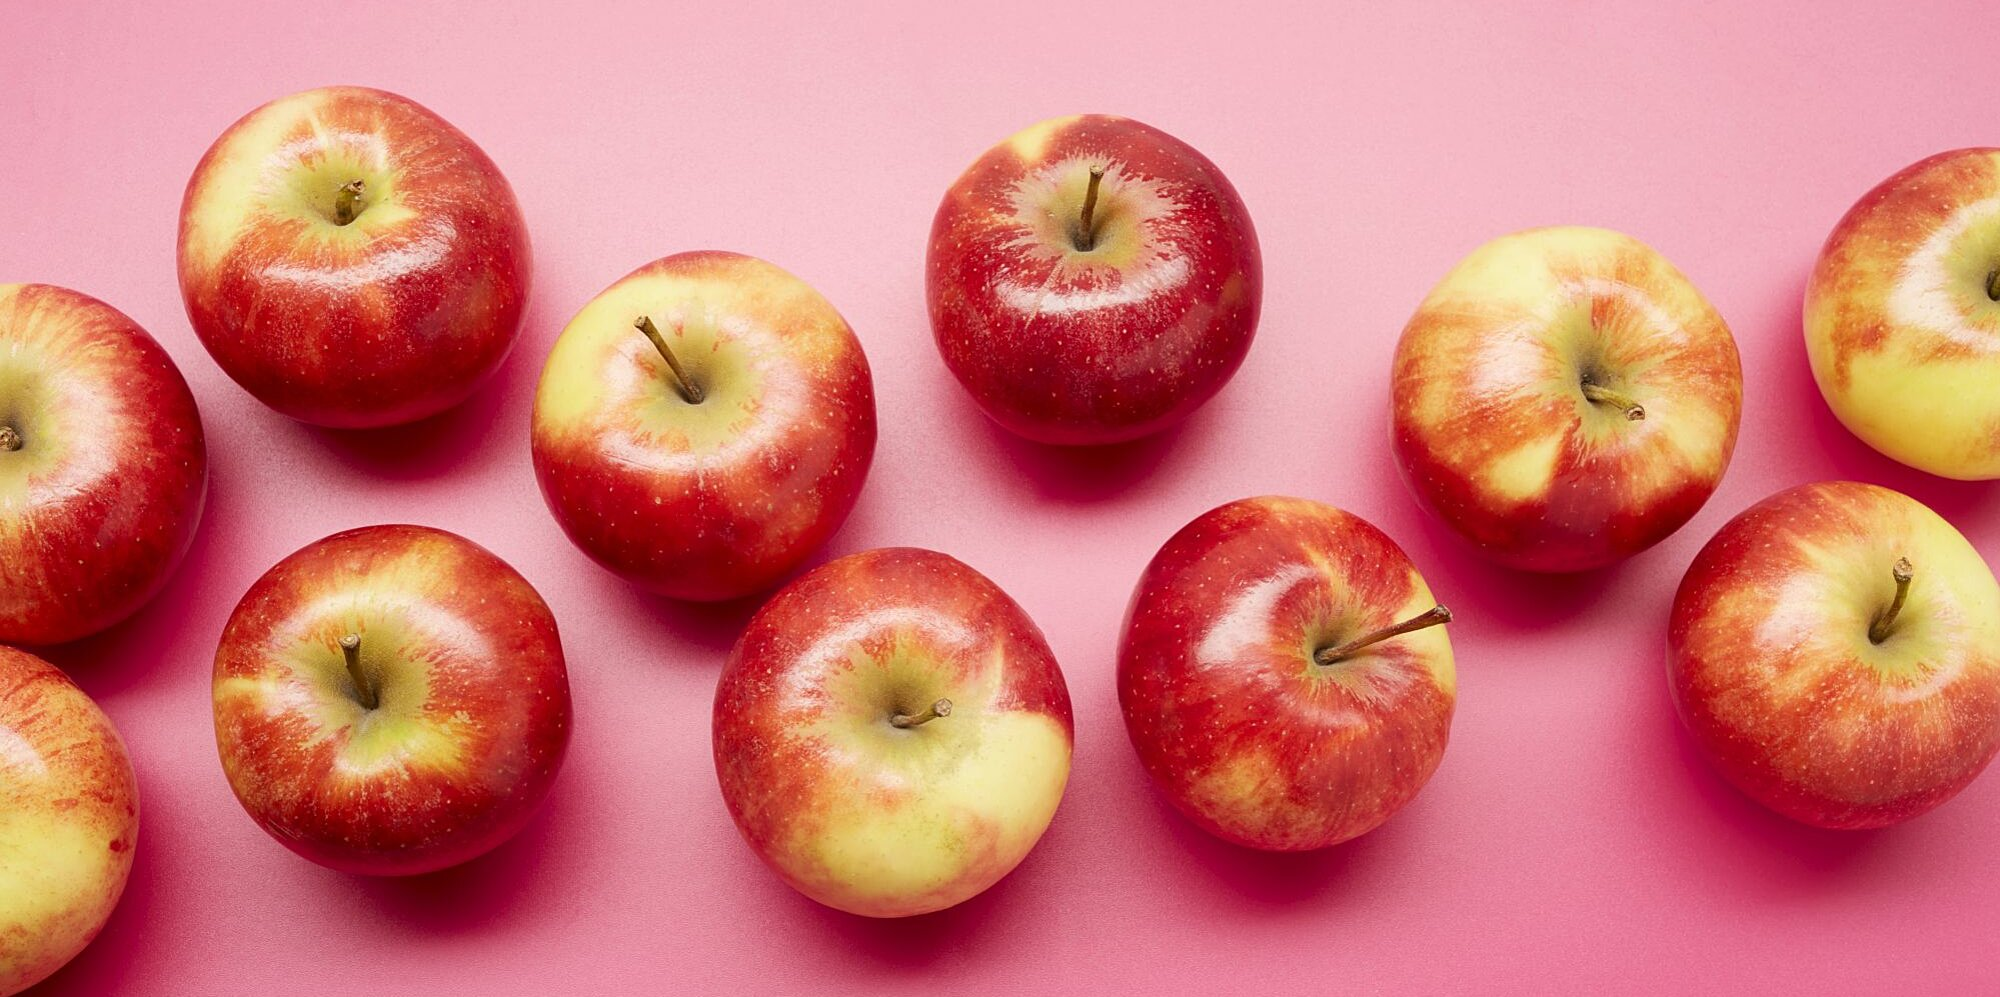 How to Wash Apples: Effective Methods for Cleaning Apples   Real Simple